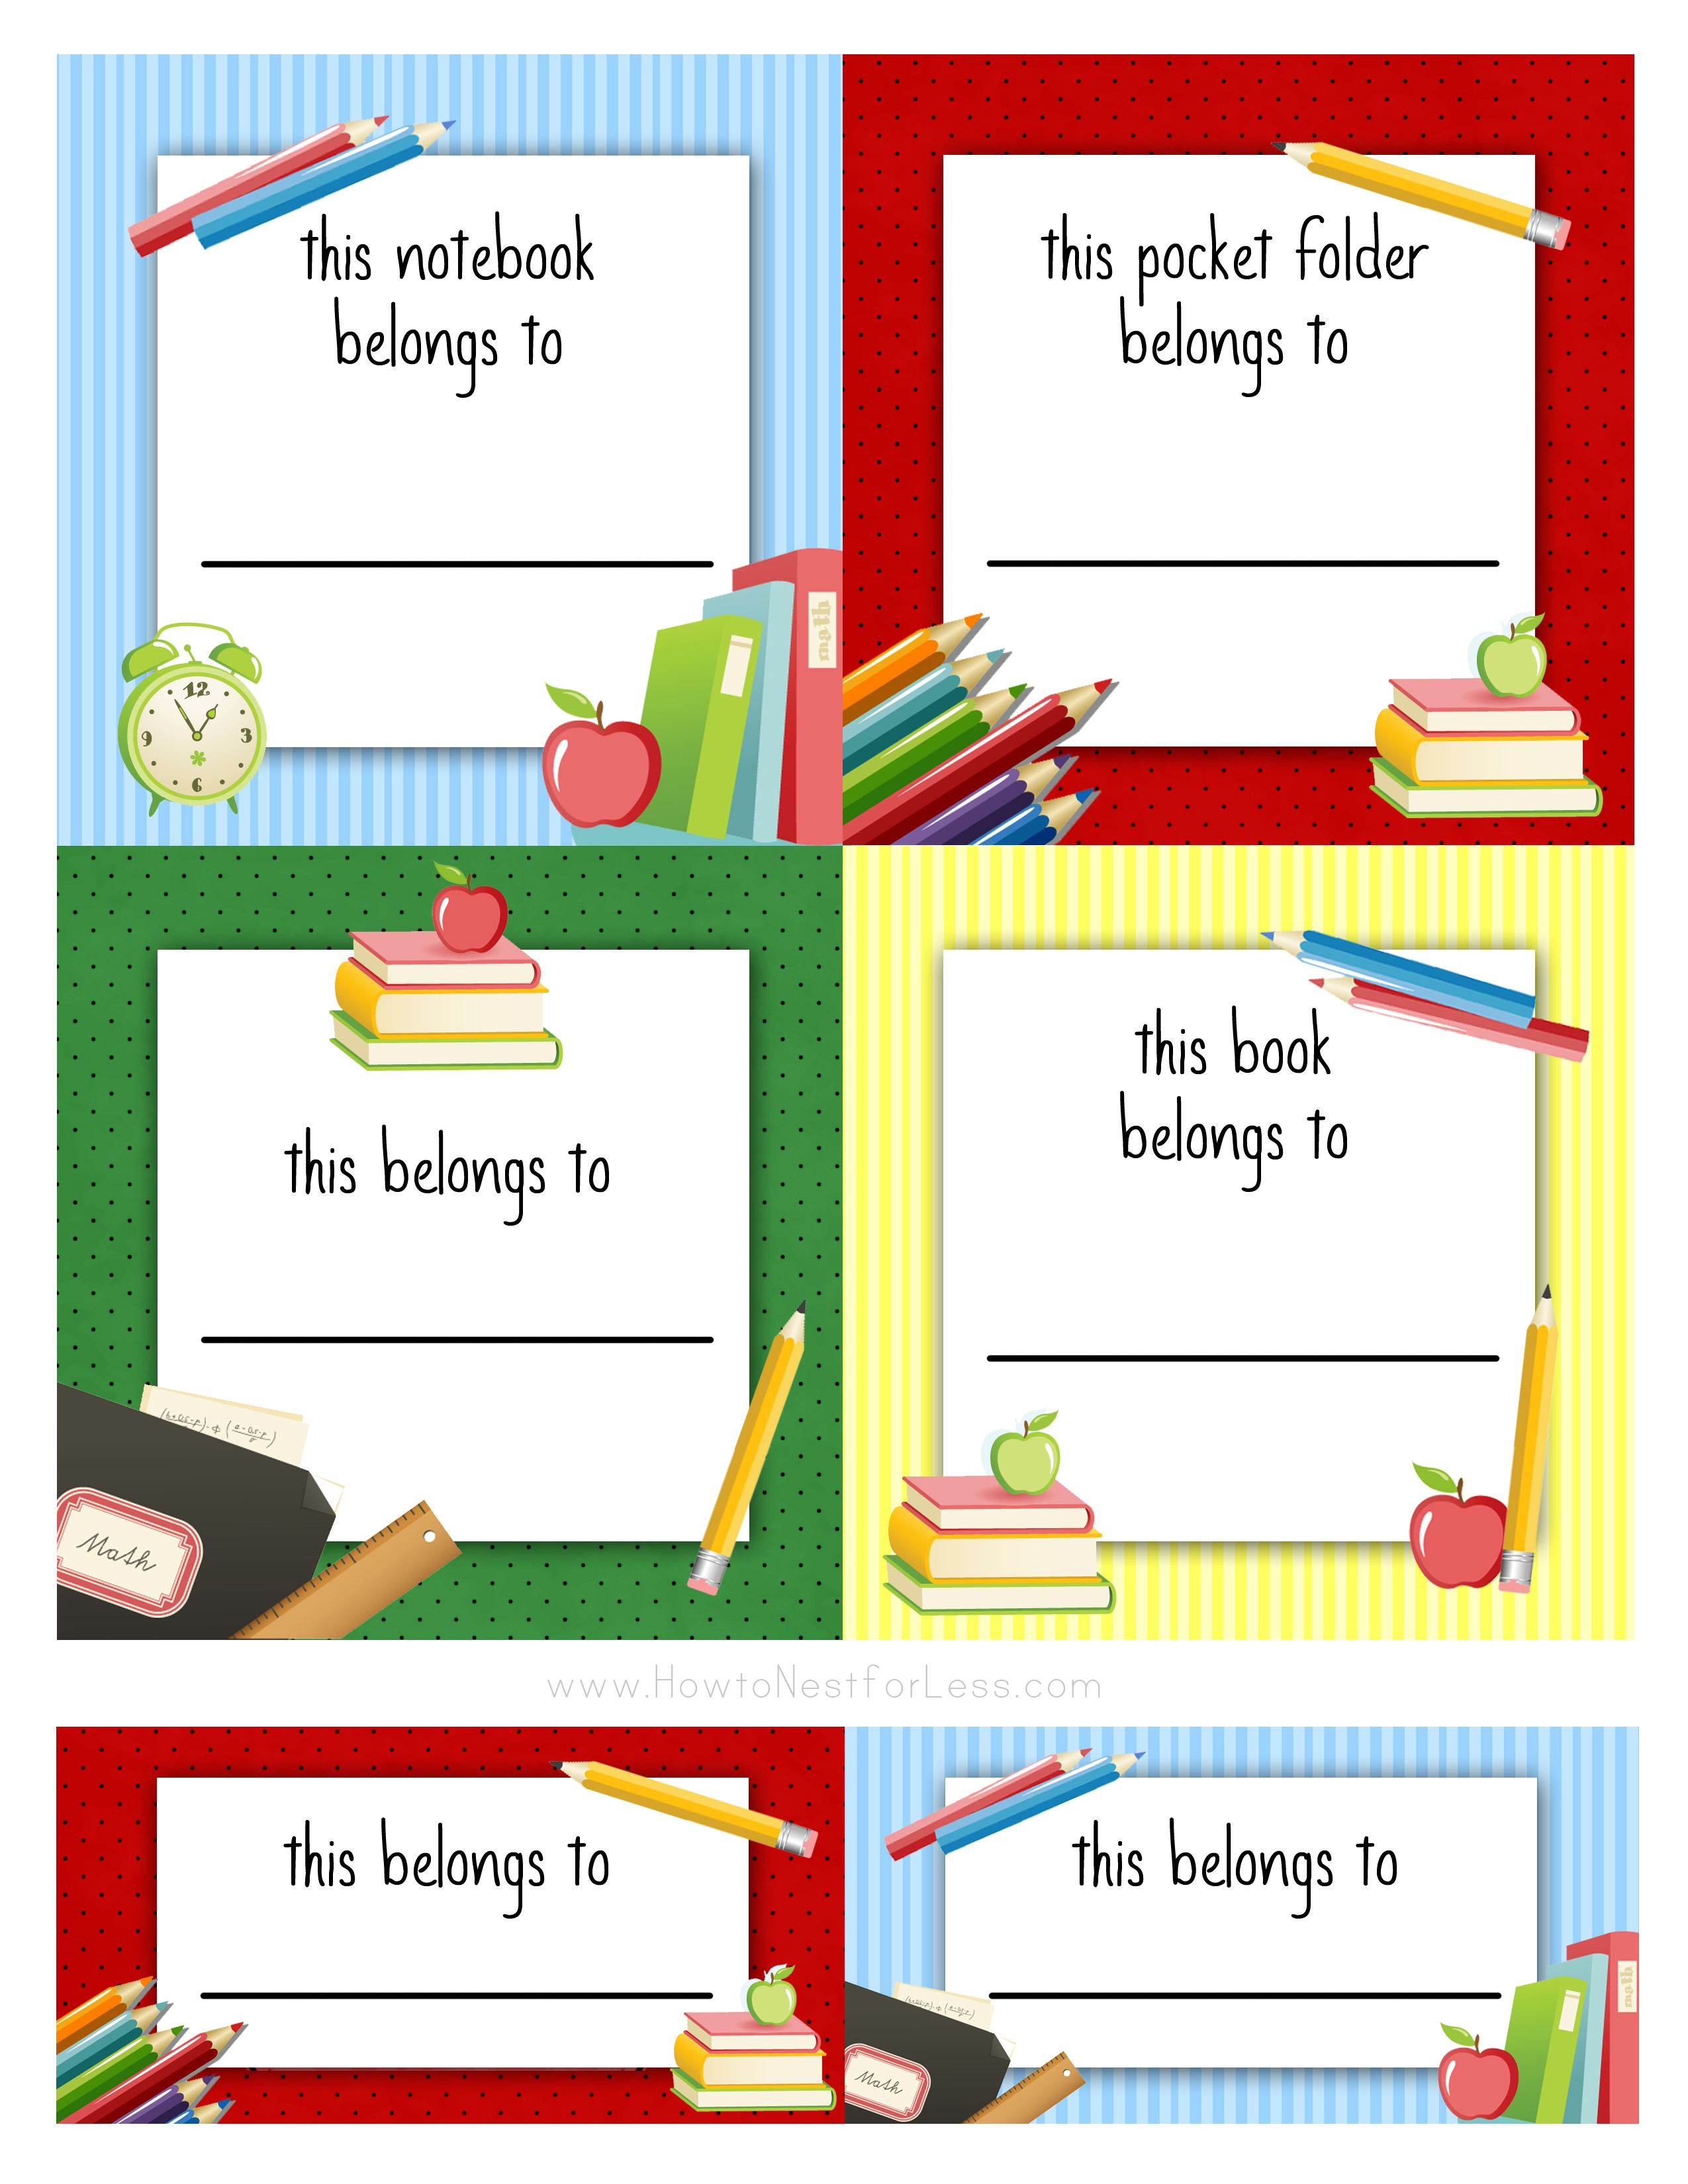 It's just a photo of Trust Printable Kids Booklets